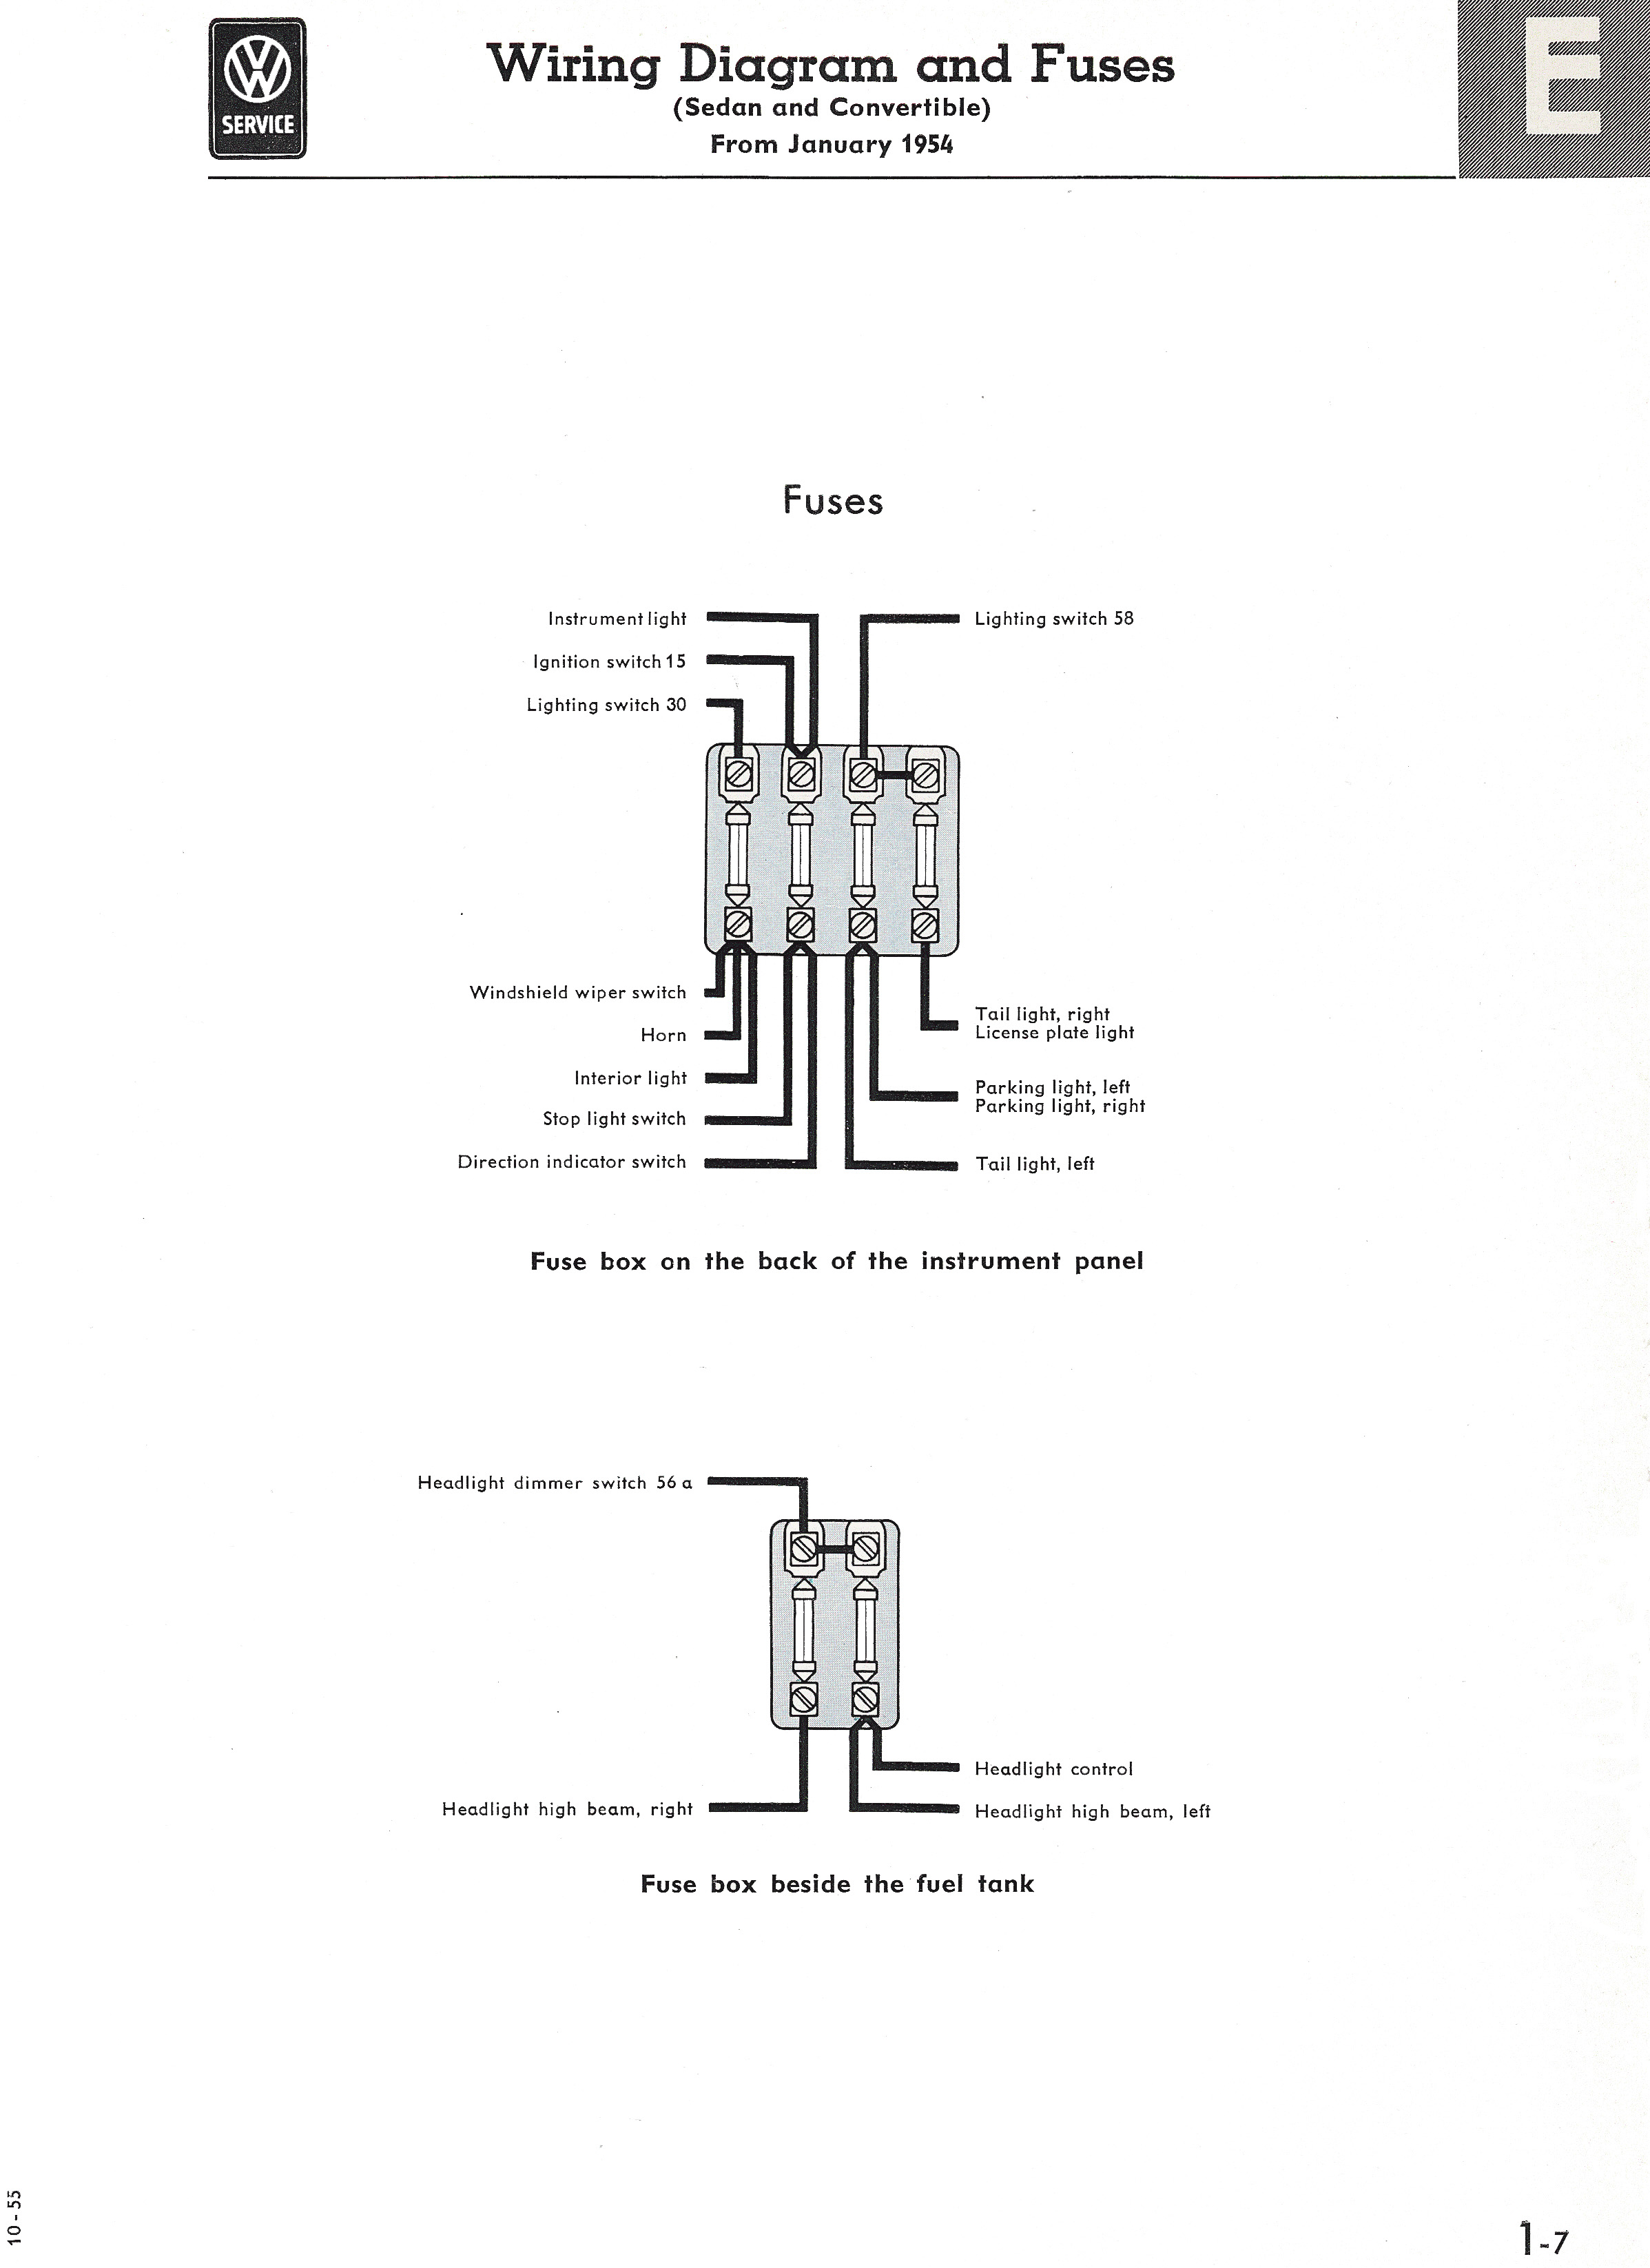 Type 1 Wiring Diagrams Volkswagen Super Beetle Diagram